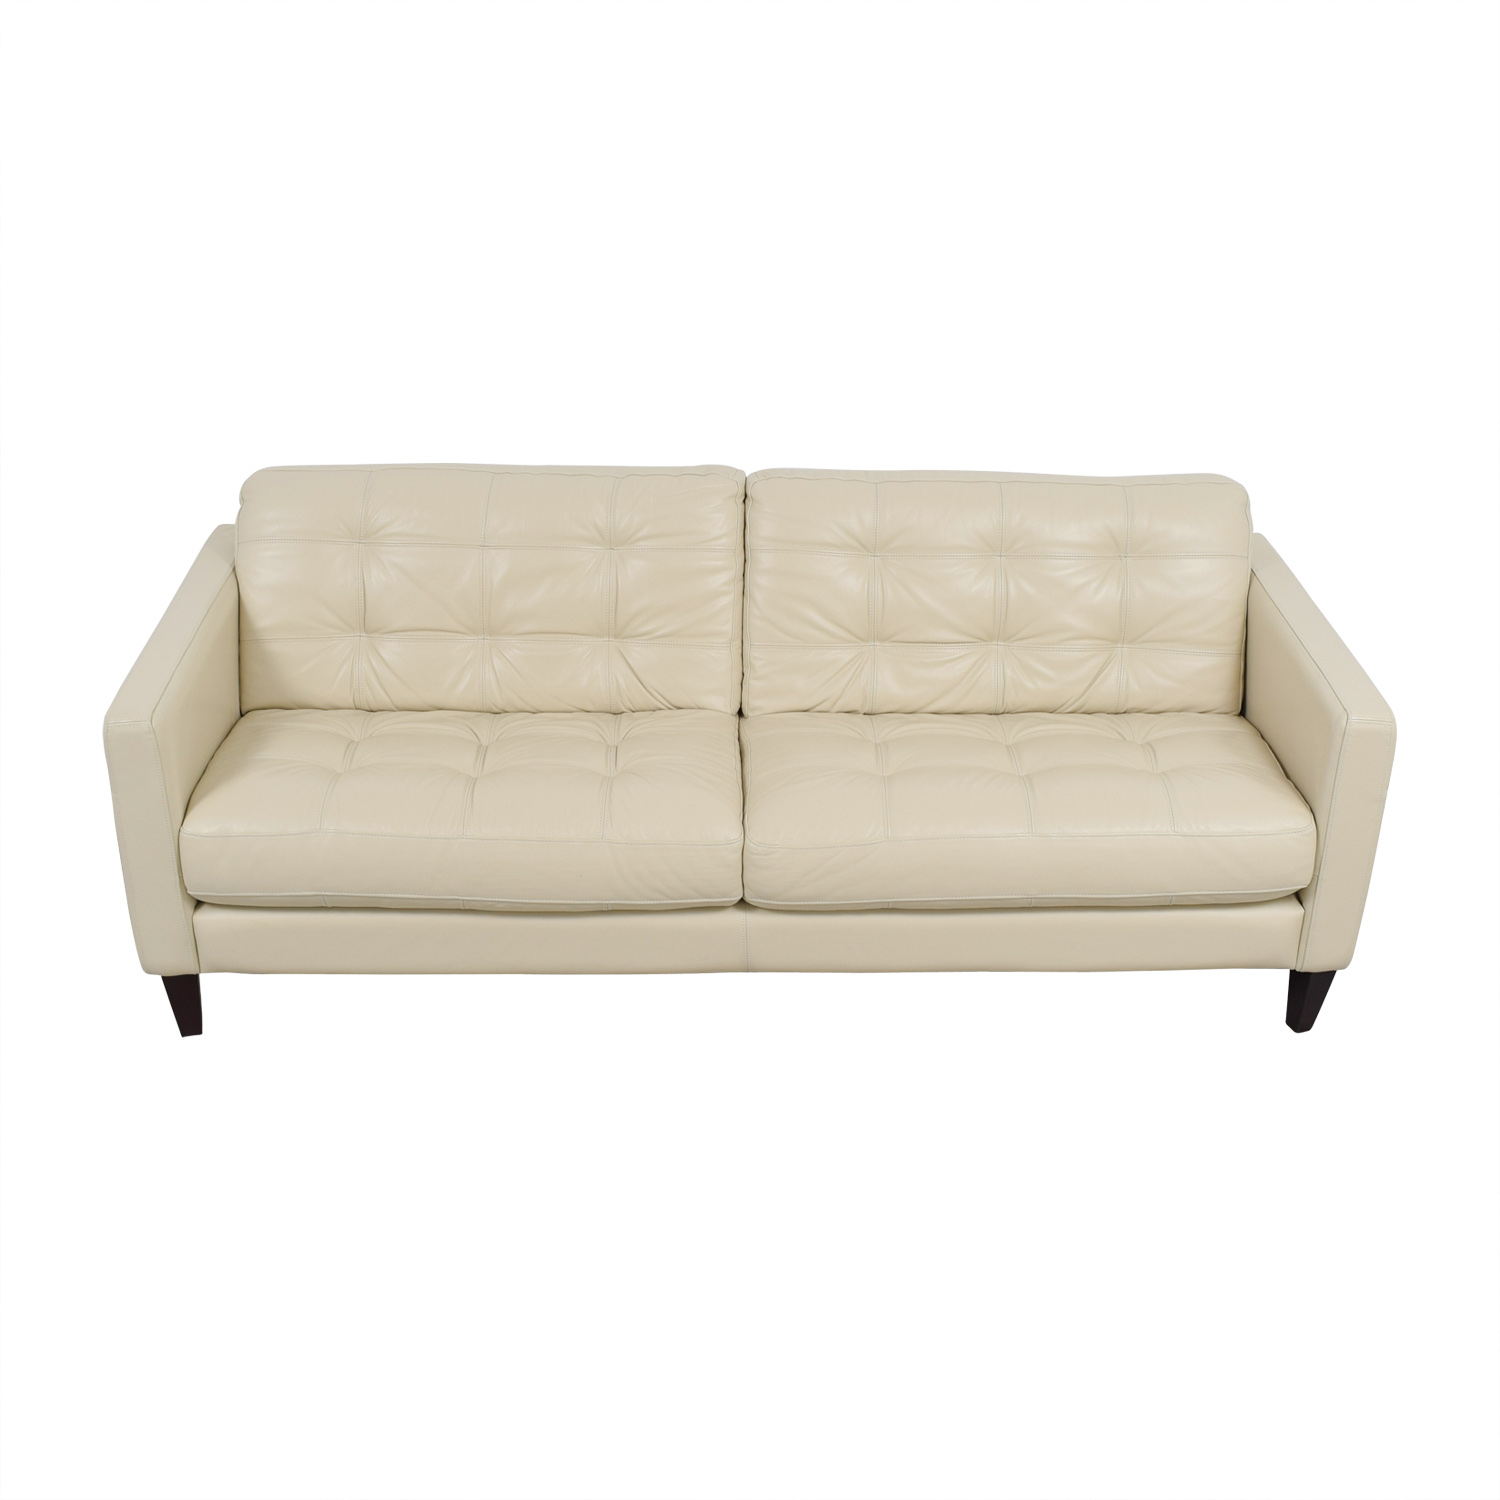 buy Macys White Leather Tufted Sofa Macys Classic Sofas